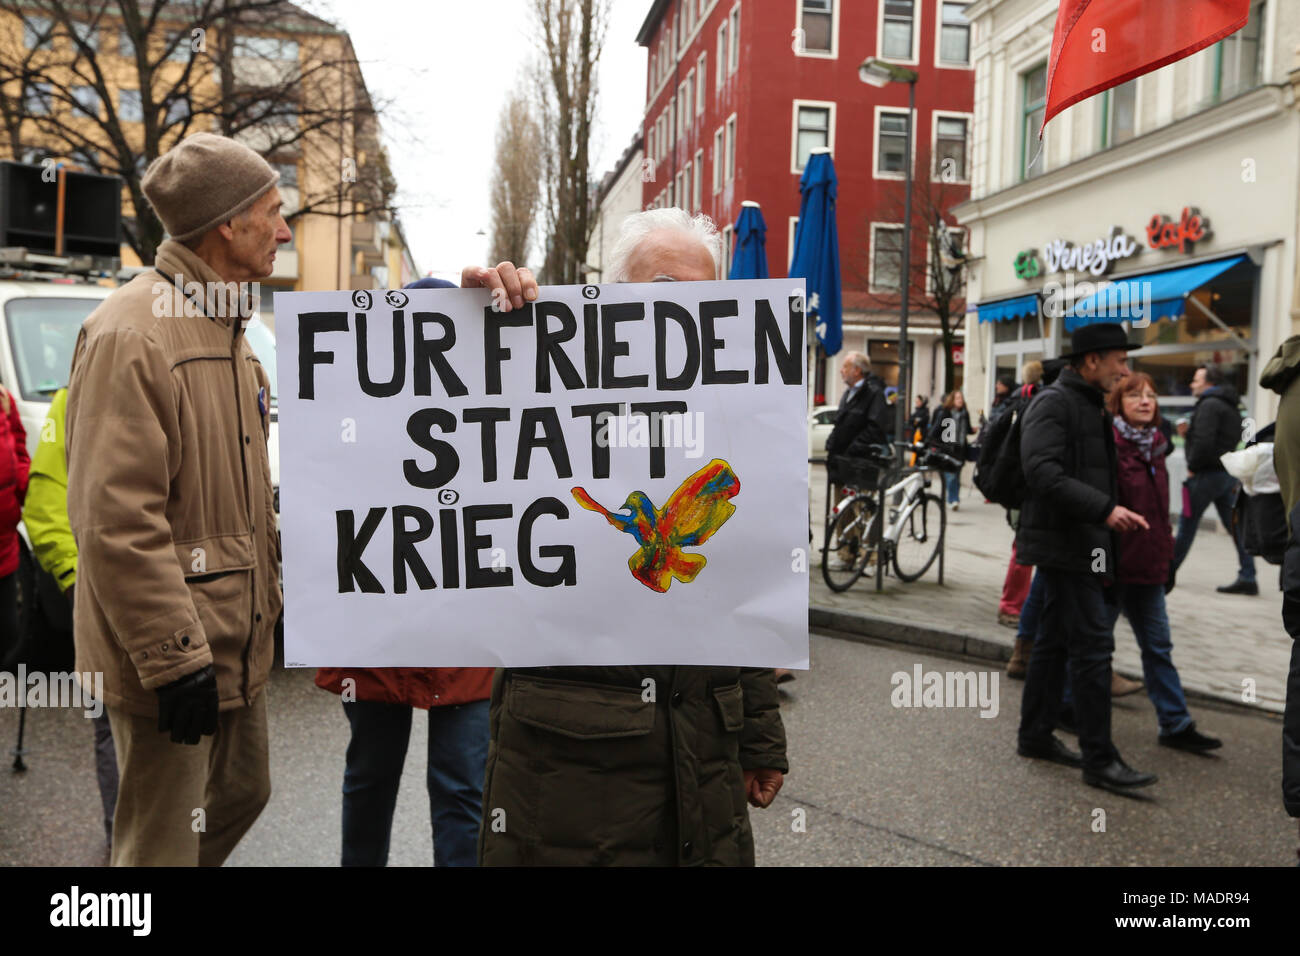 Munich, Germany. 31st Mar, 2018. A man with a sign with a colorful pigeon. Some thousand joined the Ostermarsch (easter march) for peace and disarmament. The Ostermarsch is a traditional peace demonstration, which is held yearly in hundreds of German towns. Credit: Alexander Pohl/Pacific Press/Alamy Live News Credit: PACIFIC PRESS/Alamy Live News - Stock Image